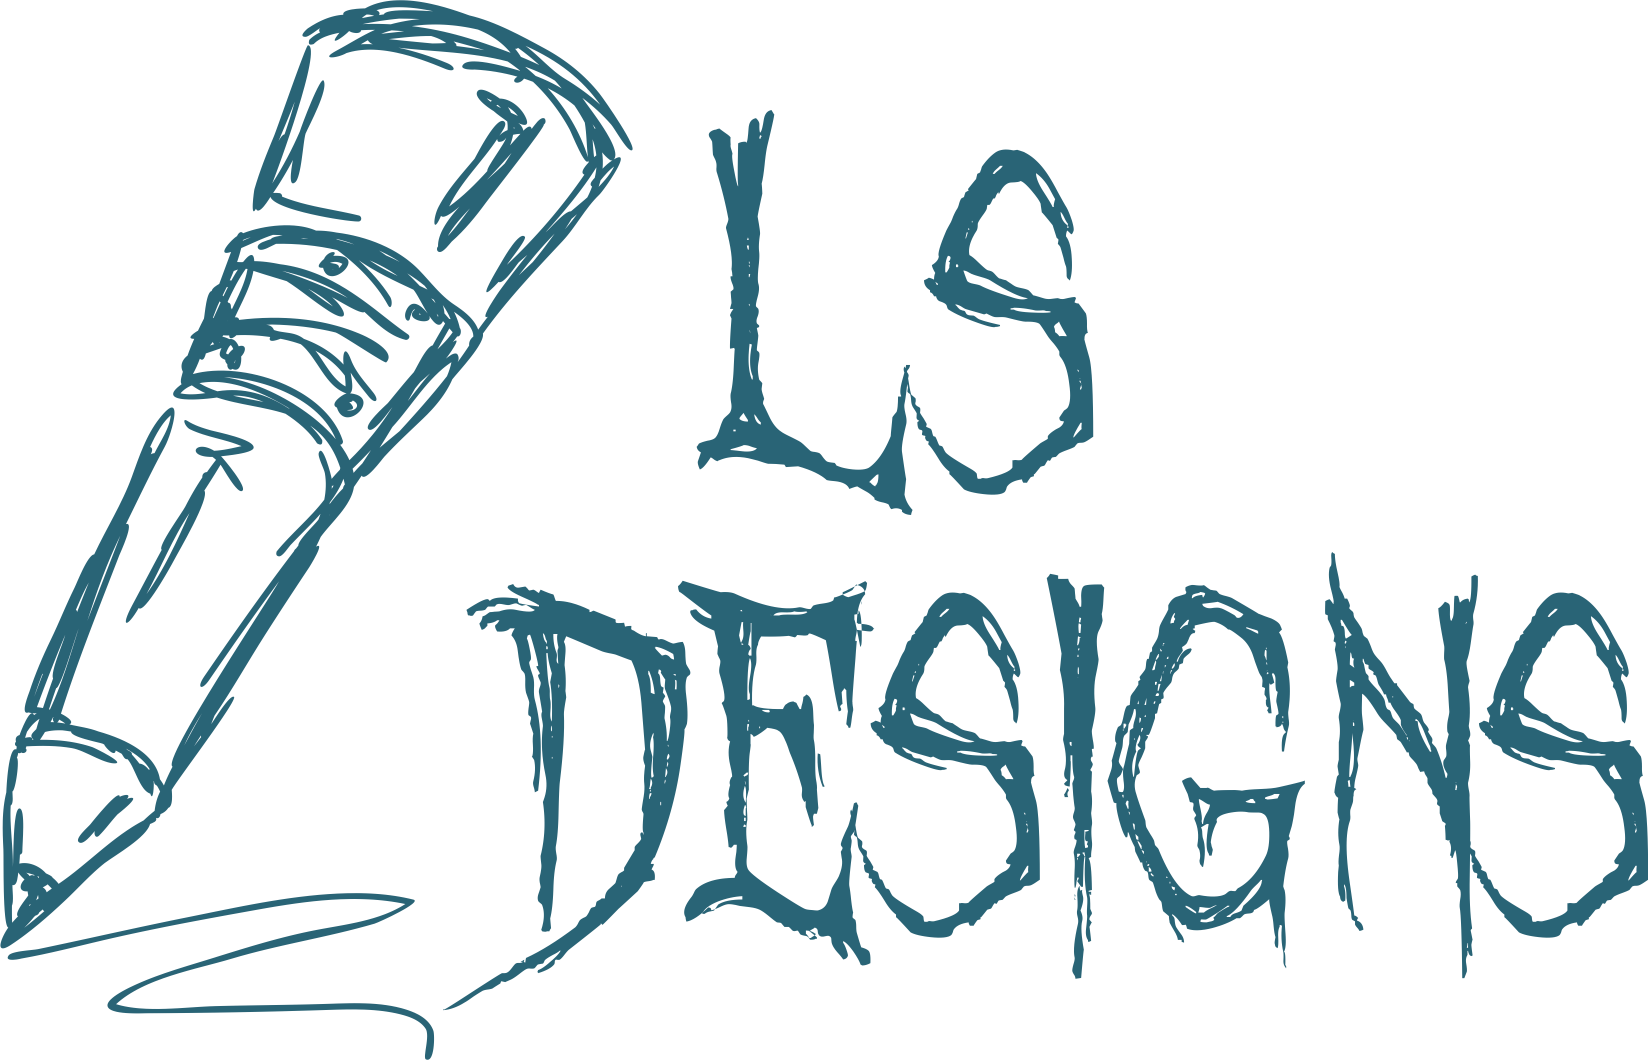 LS Designs Logo